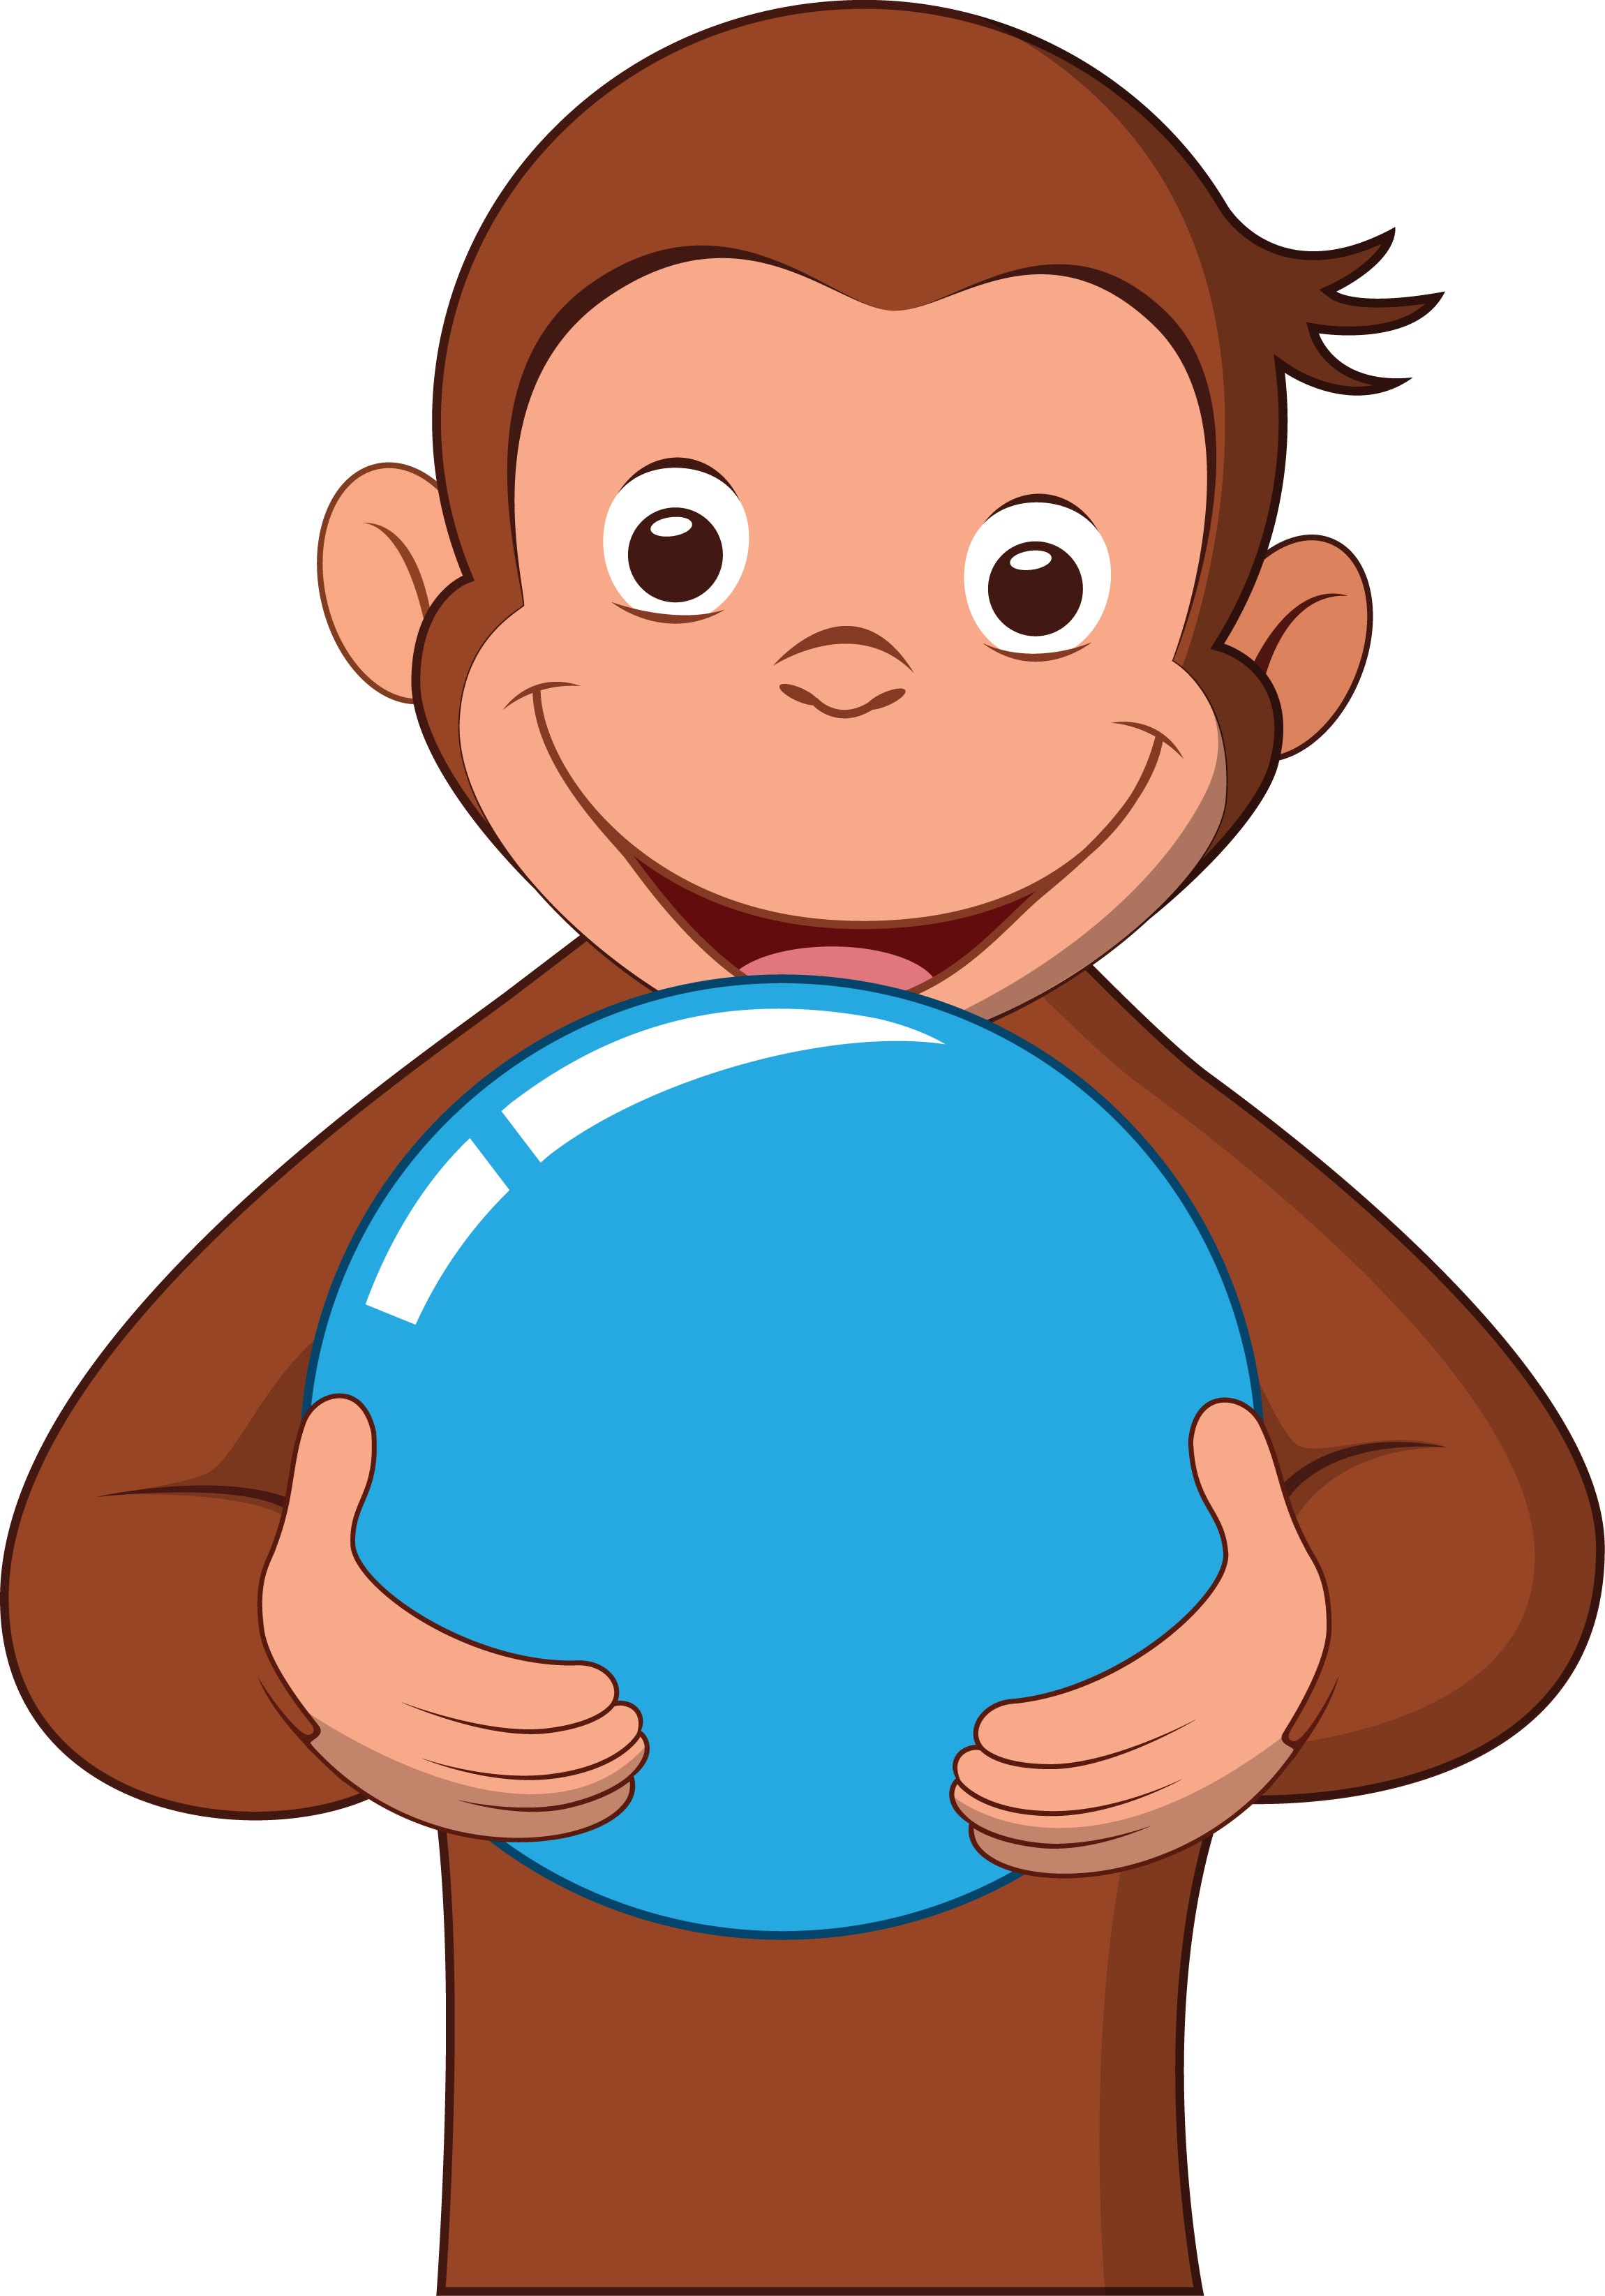 Free Curious George Invitation Template for luxury invitation layout